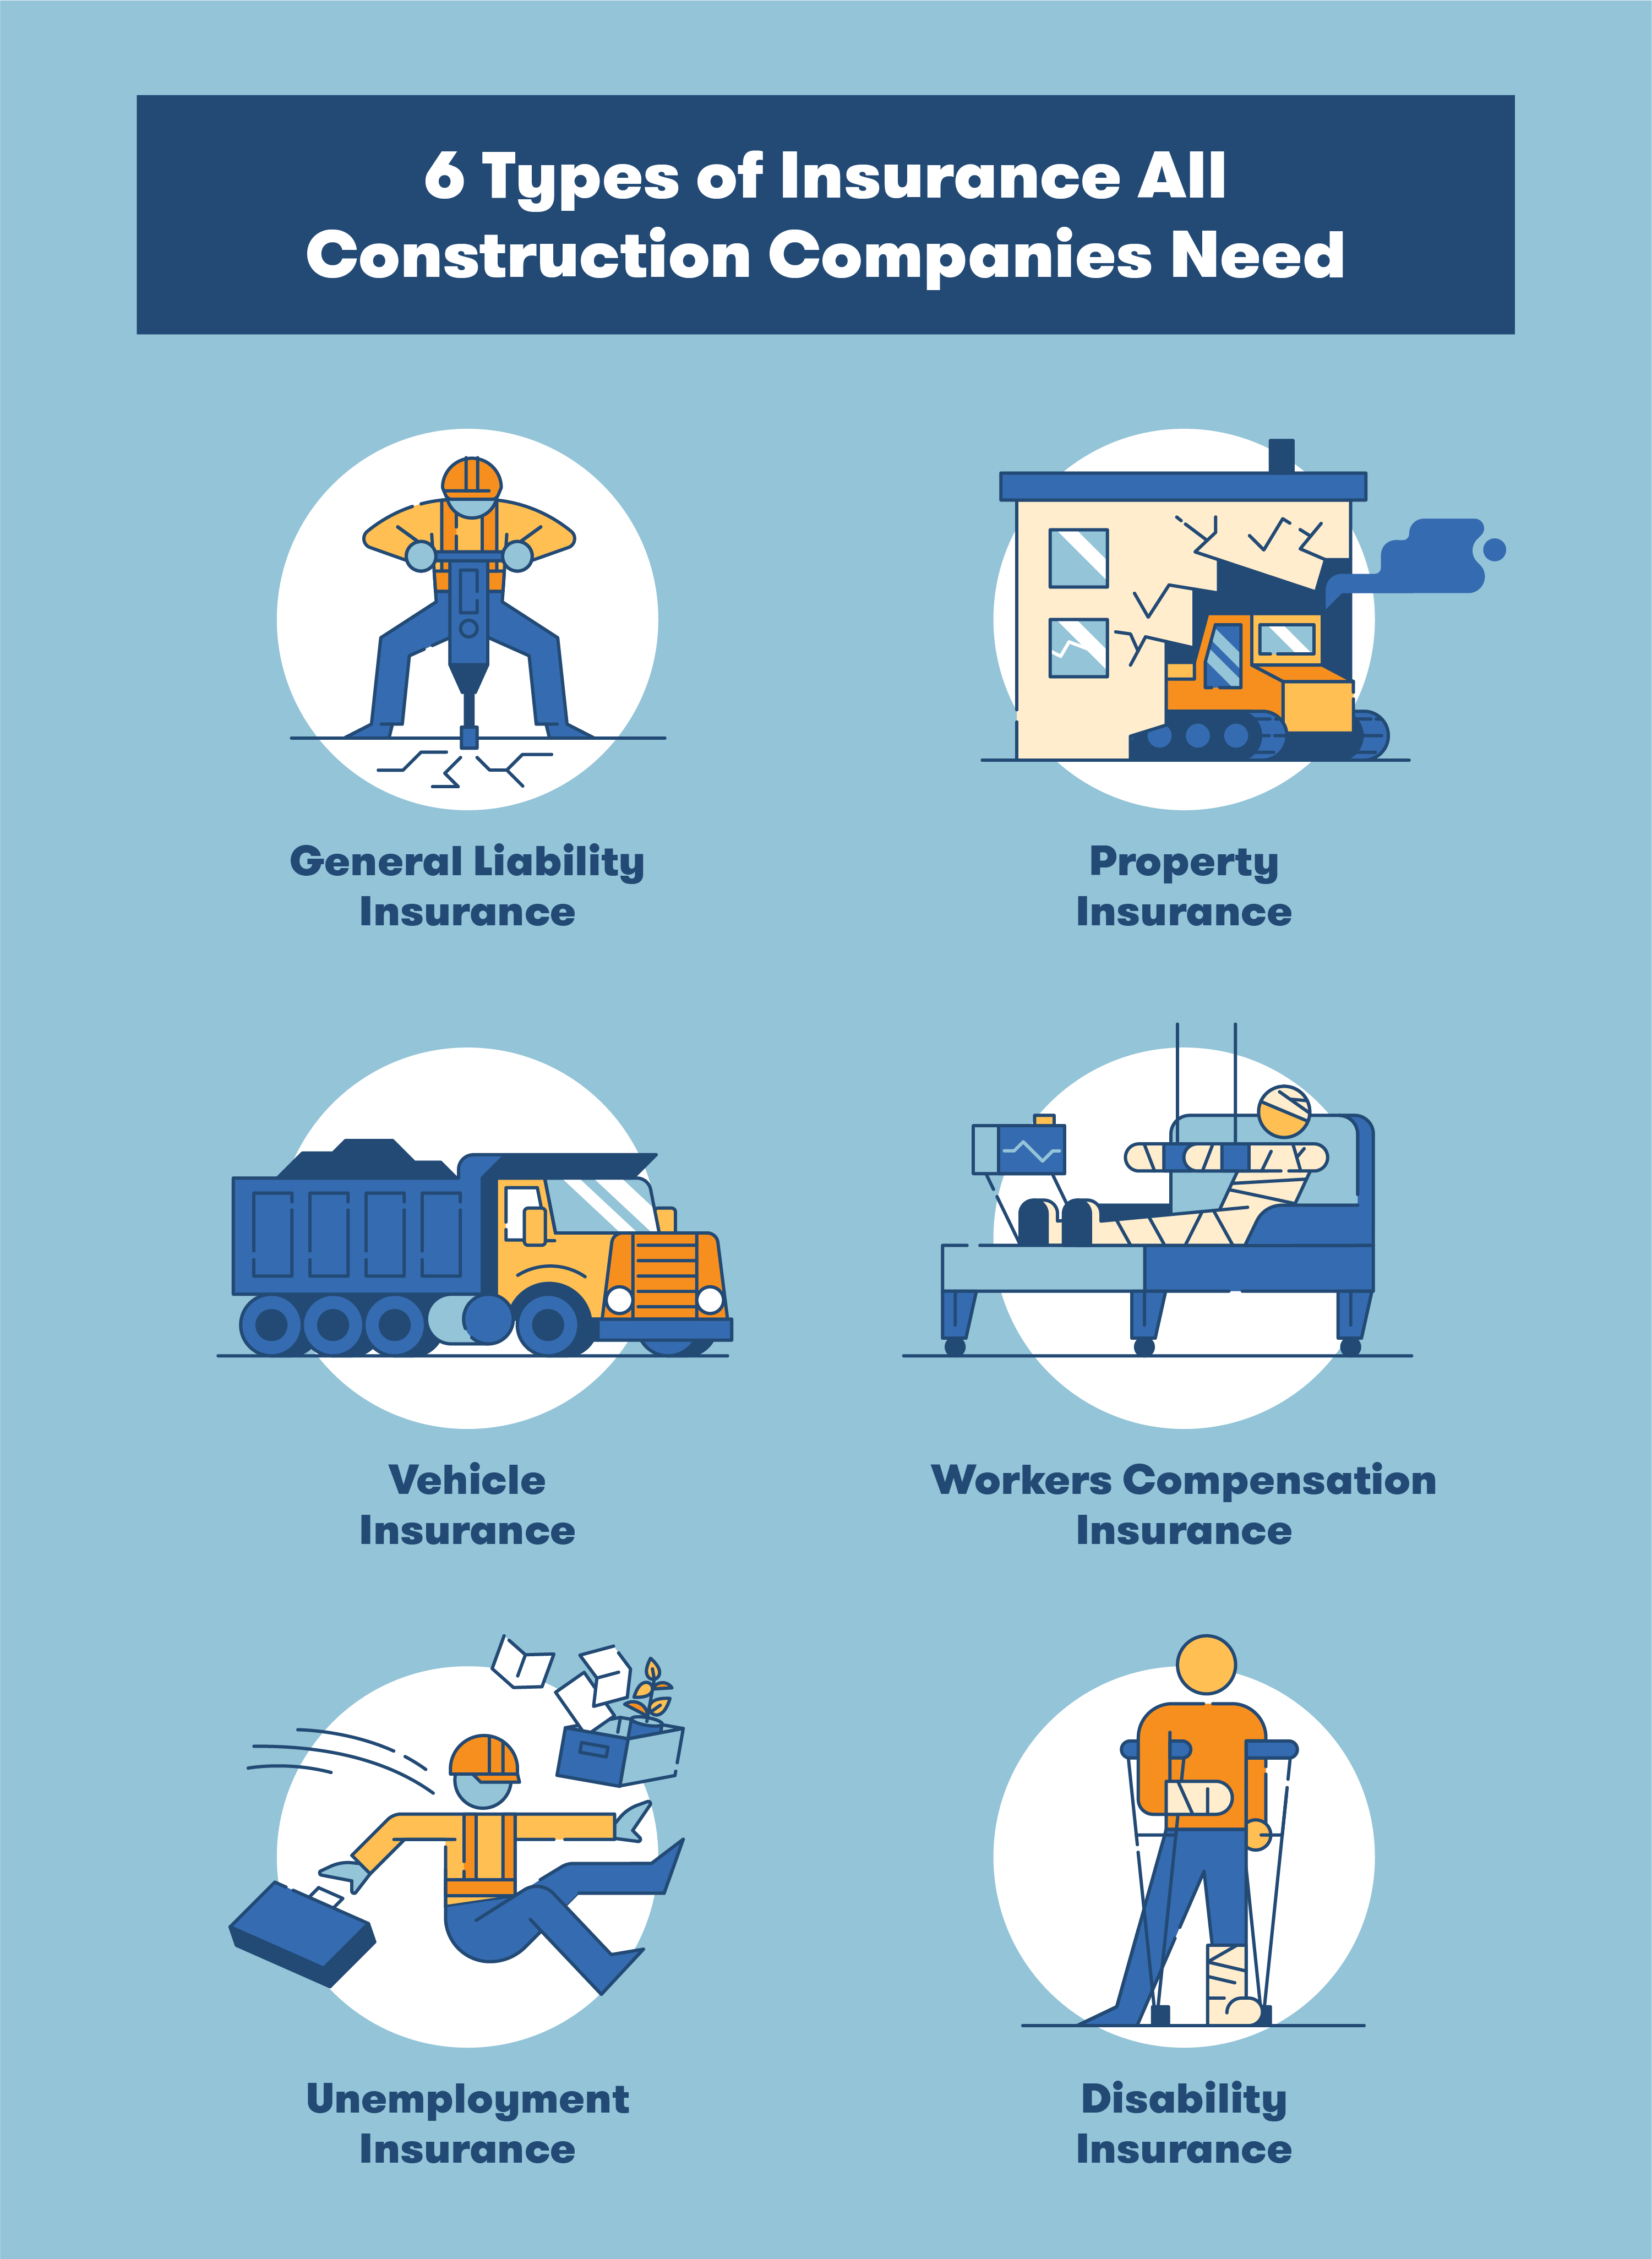 6 types of insurance needed to start a construction company